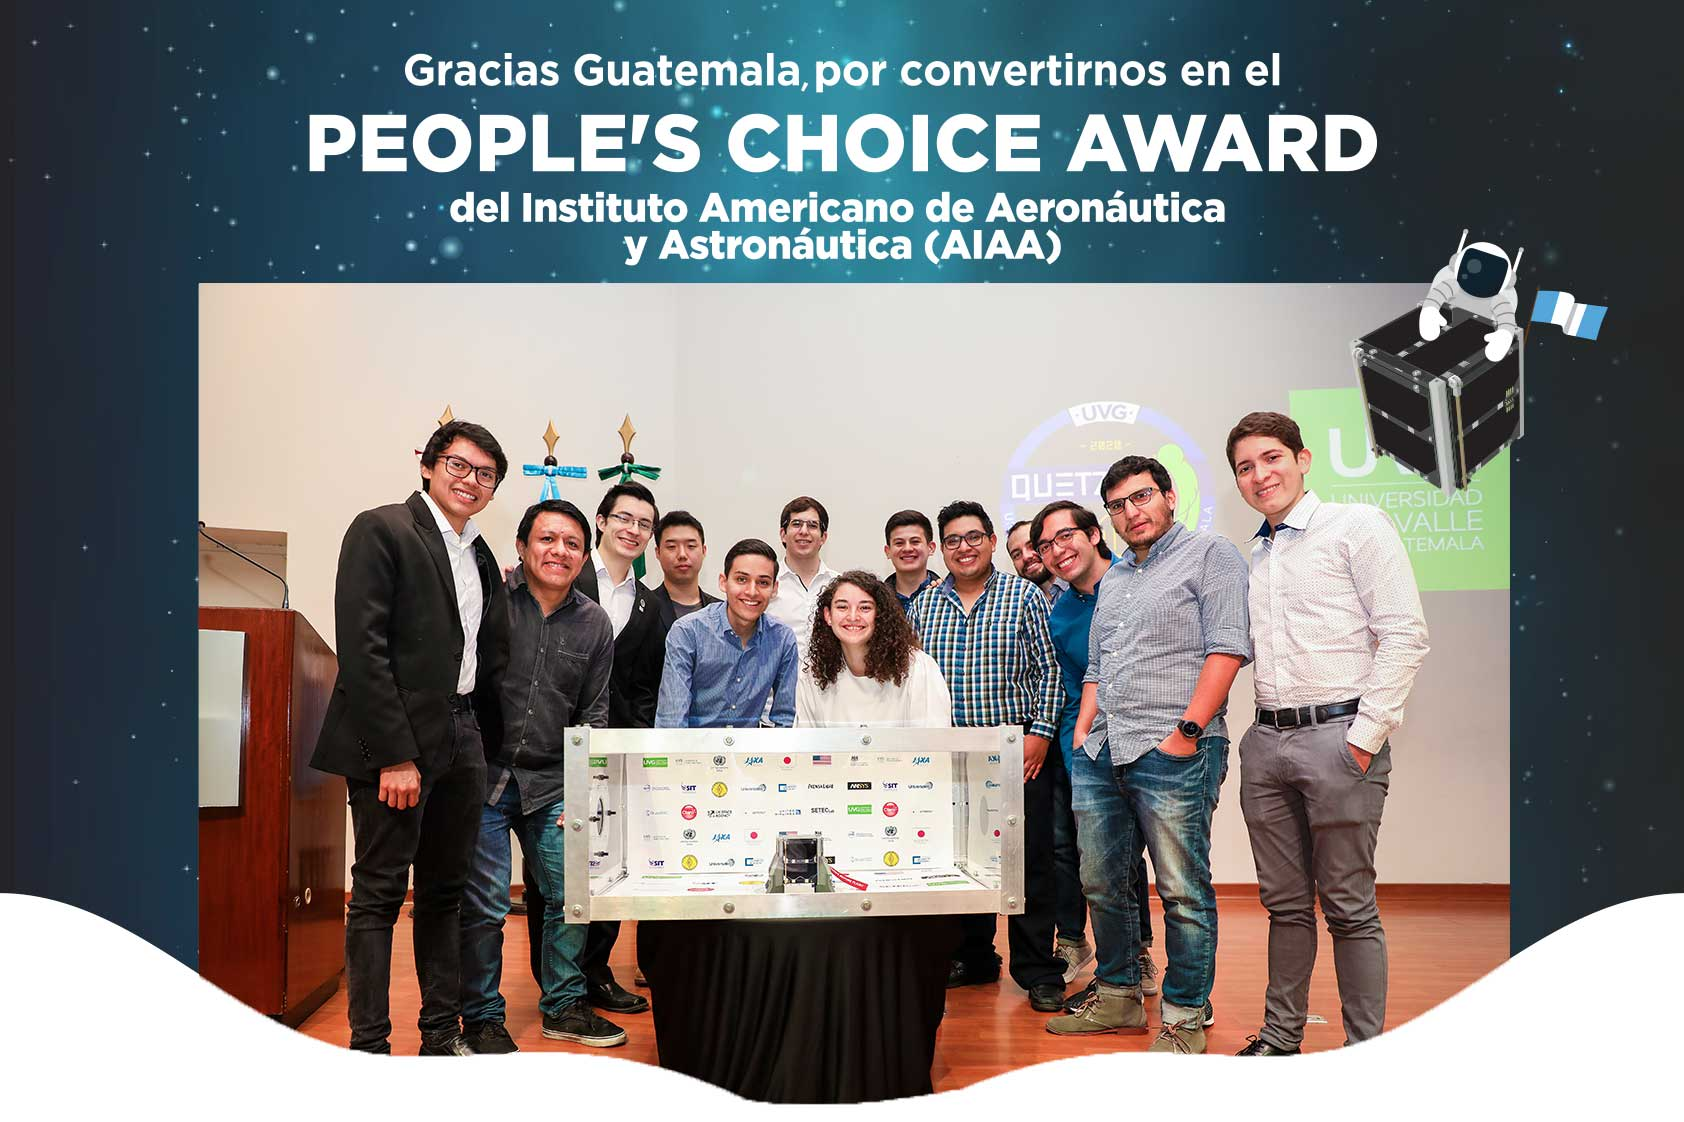 ¡Quetzal-1 recibe el People's Choice Award 2020 del AIAA!